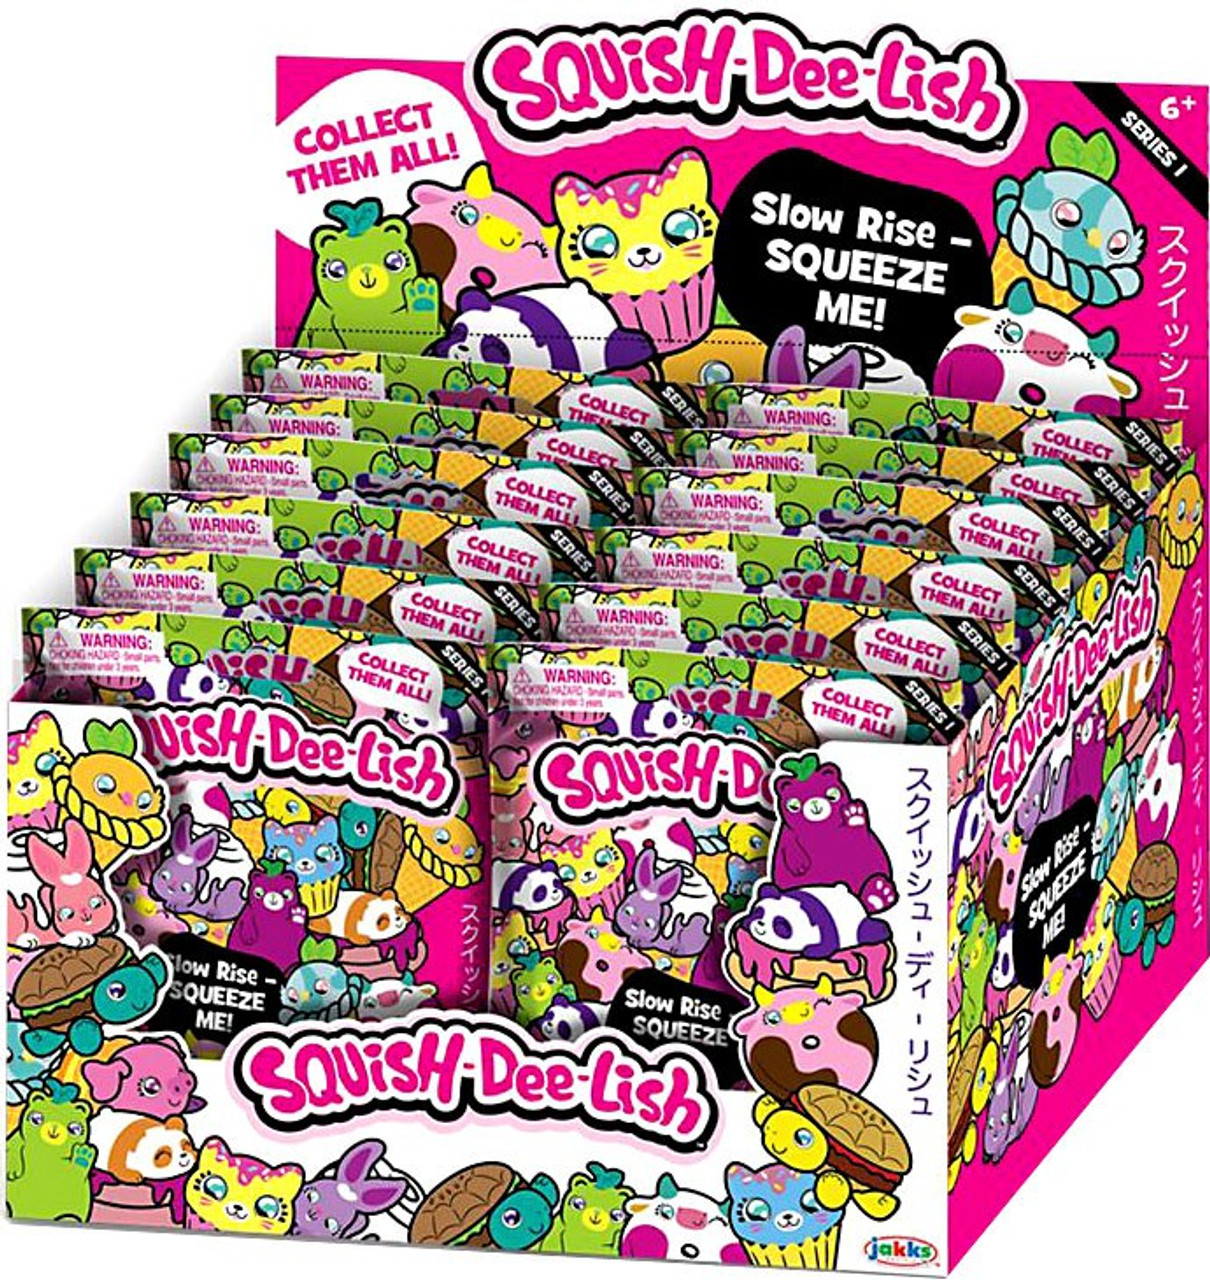 Squish Dee Lish Turtle : Squish-Dee-Lish Animals Series 1 Mystery Box 12 Packs Jakks Pacific - ToyWiz